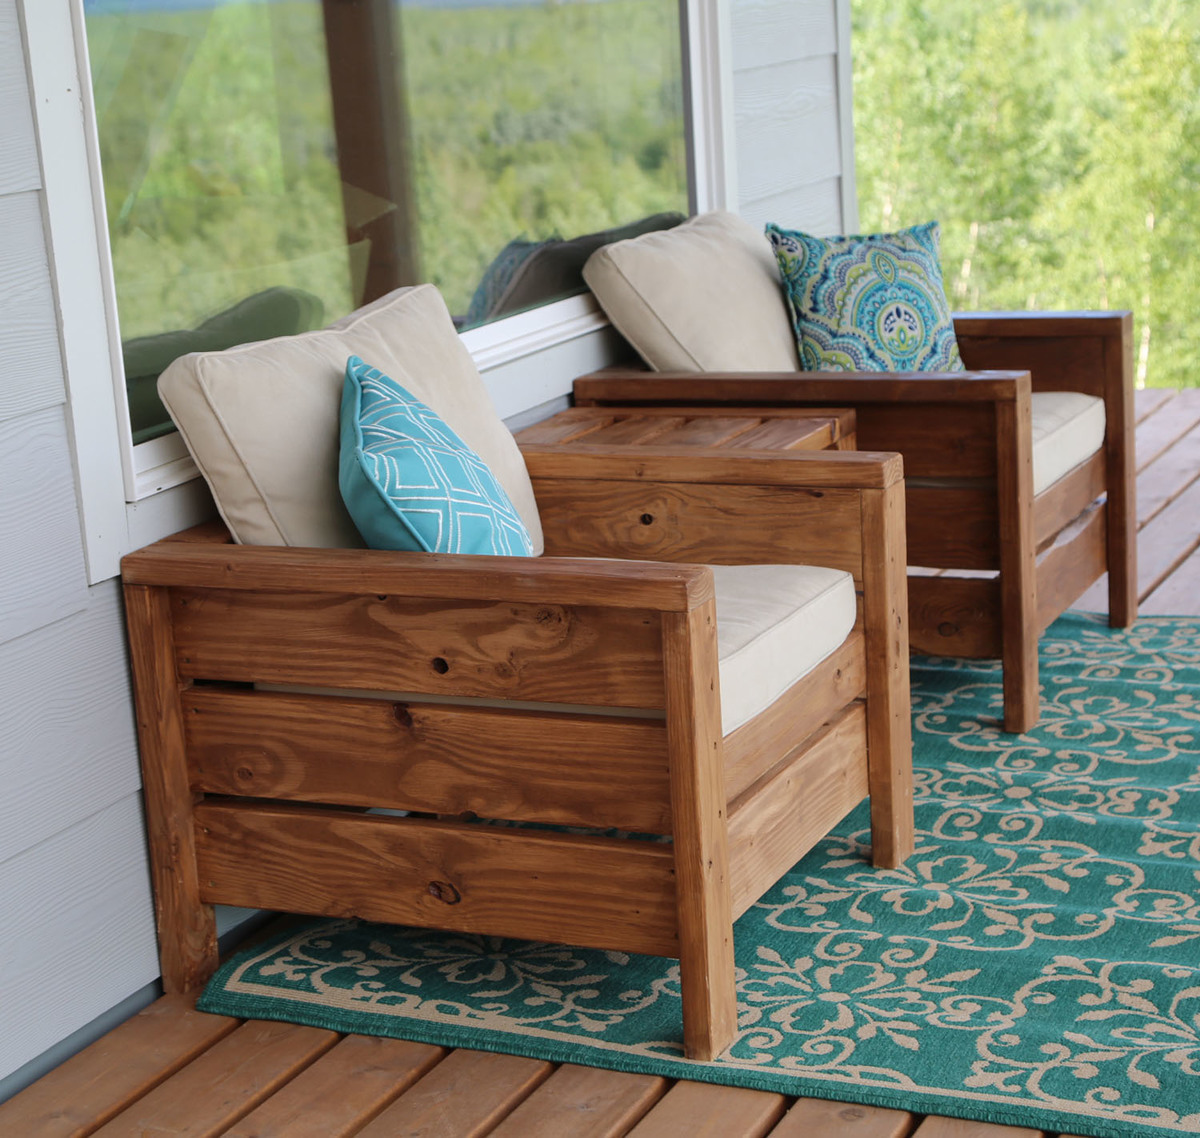 Diy Outdoor Furniture Plans HANDMADE FROM THIS PLAN u003eu003e Diy